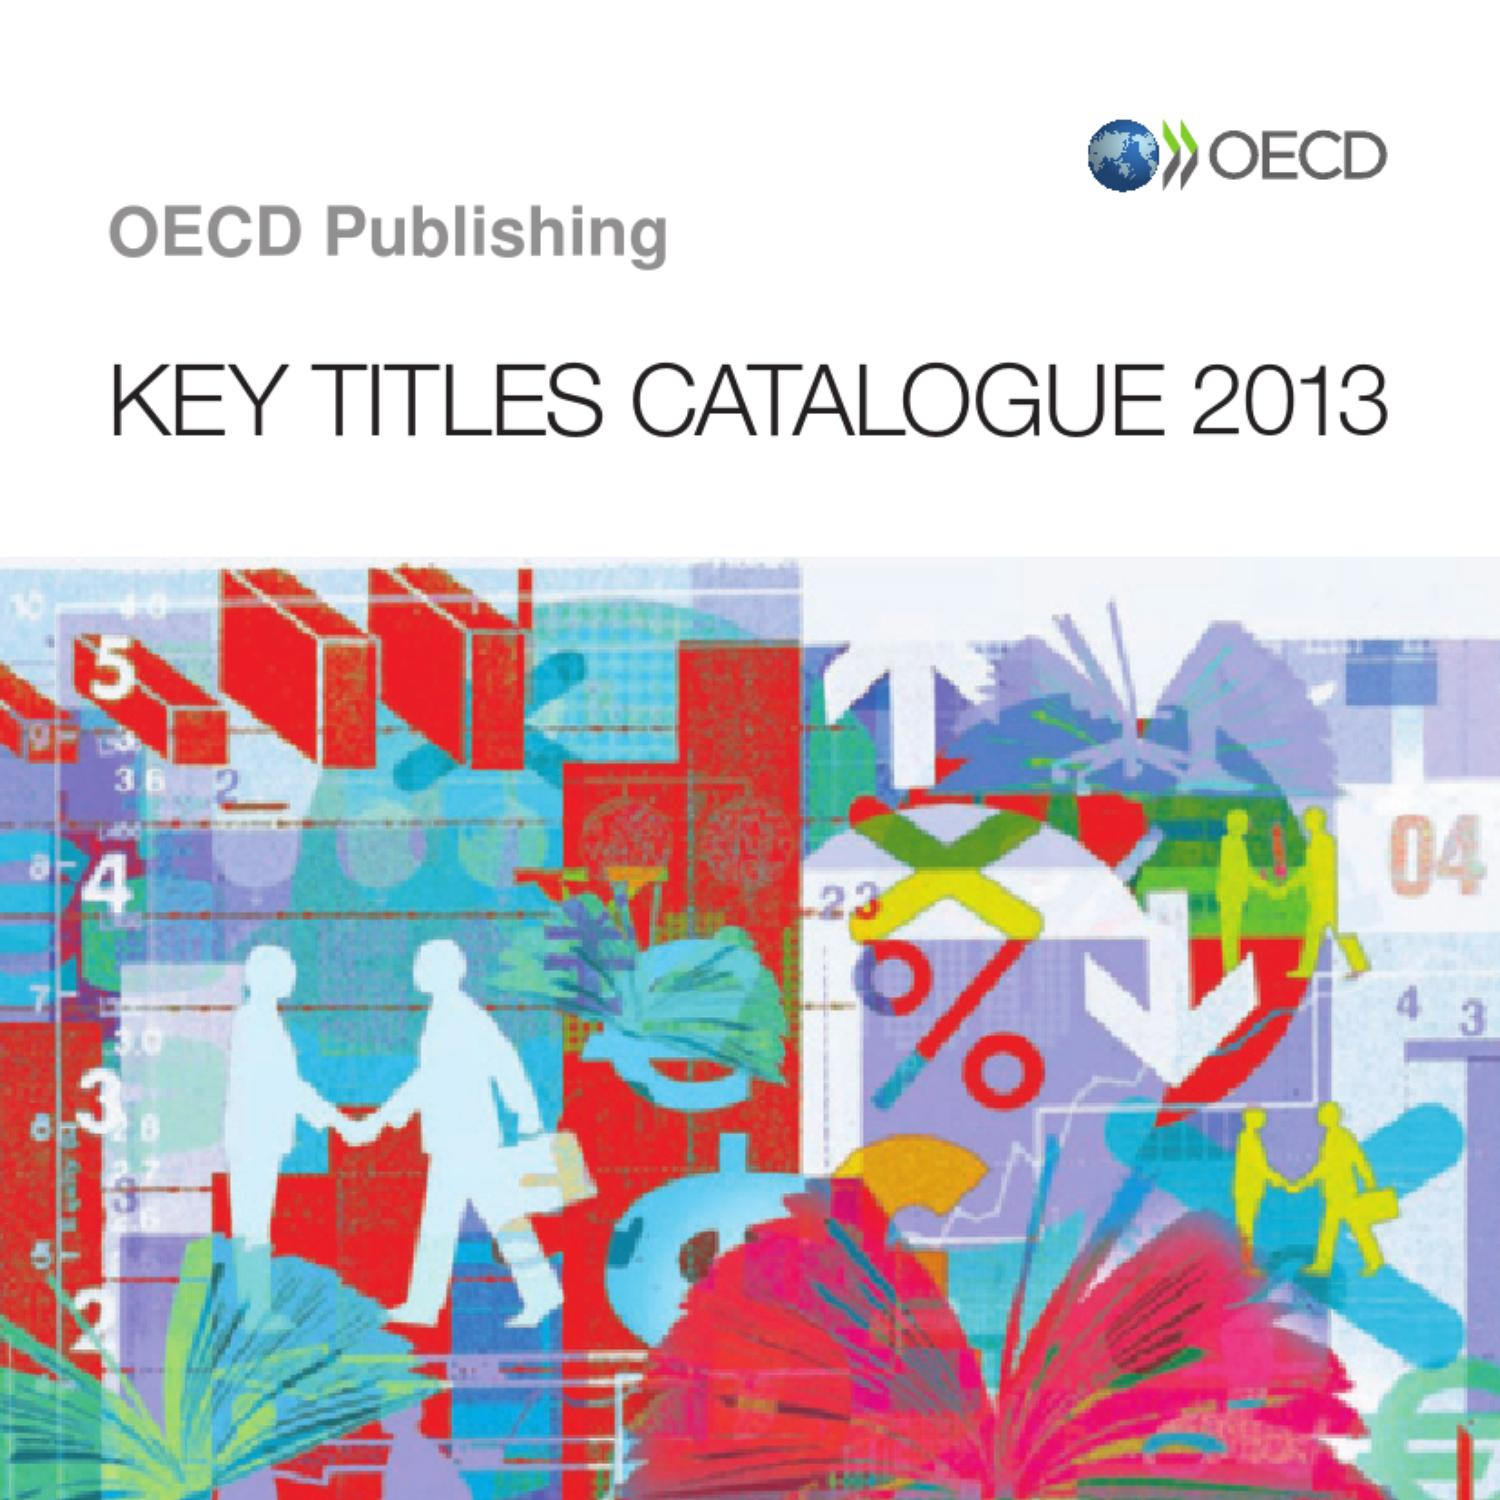 OECD Key Titles Catalogue 2013 by OECD - issuu